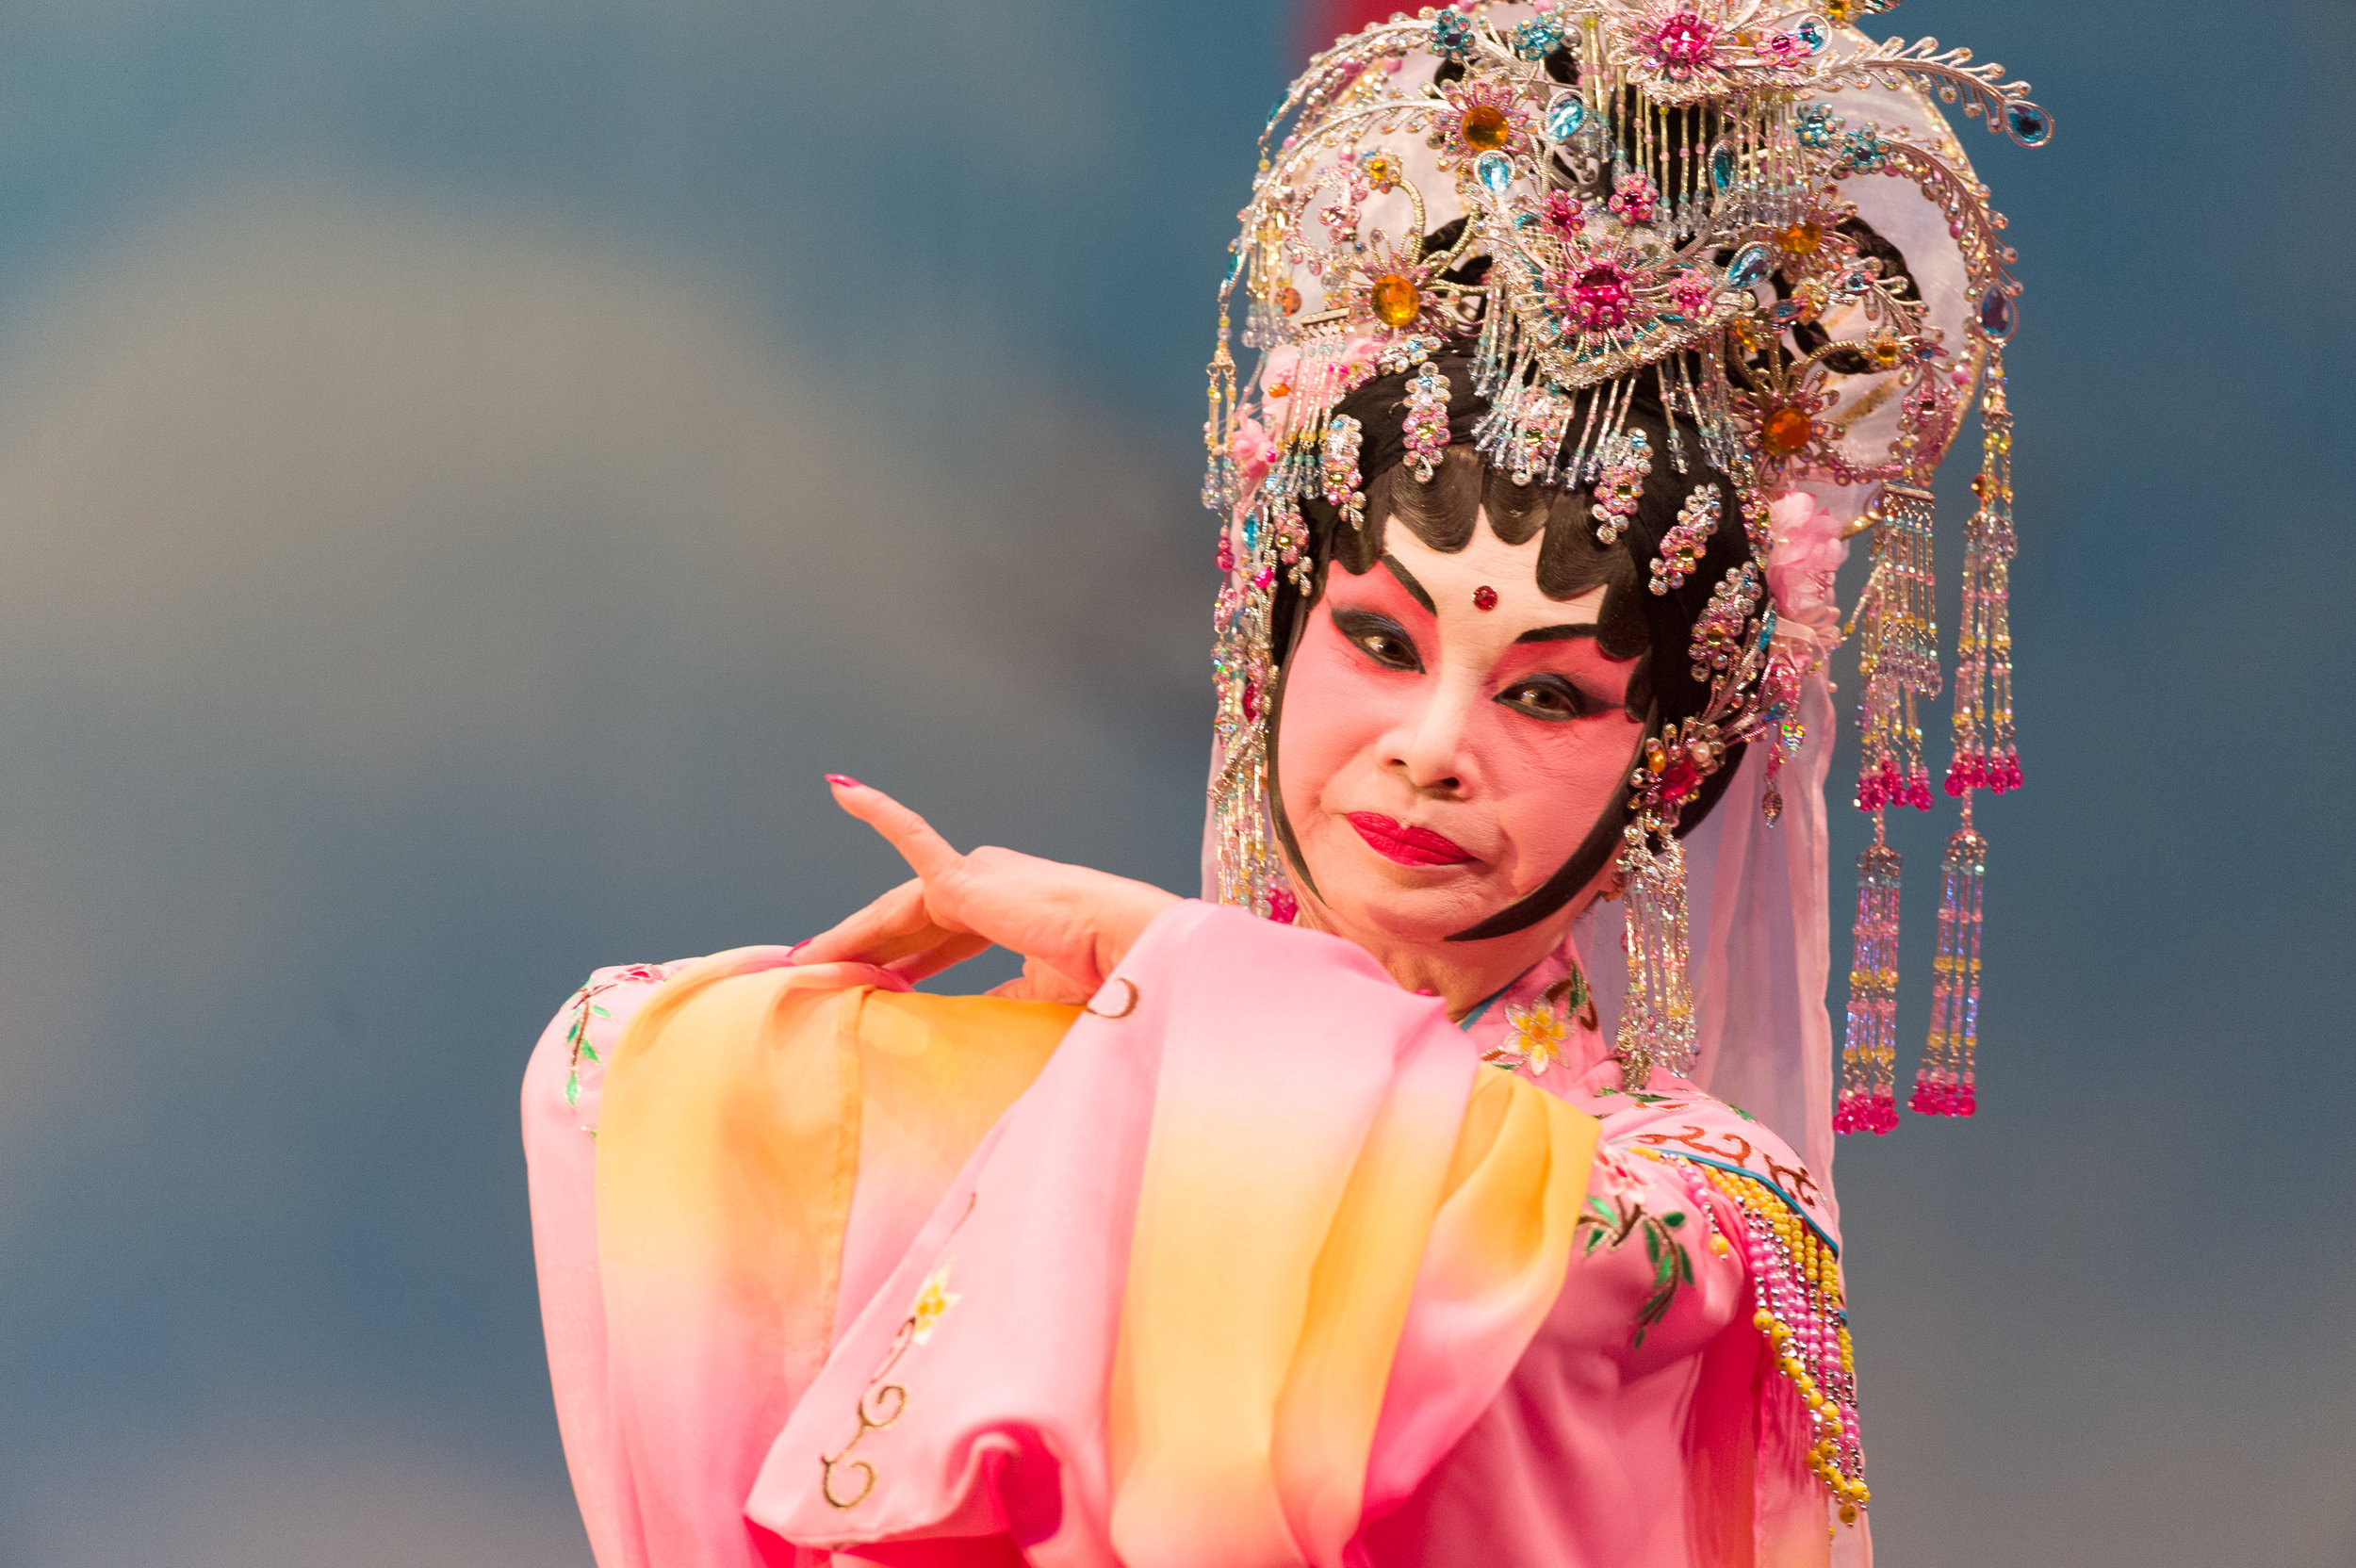 Red.Bean.Cantonese.Opera.Performance.Show.2014.July.27.2014.2099.jpg